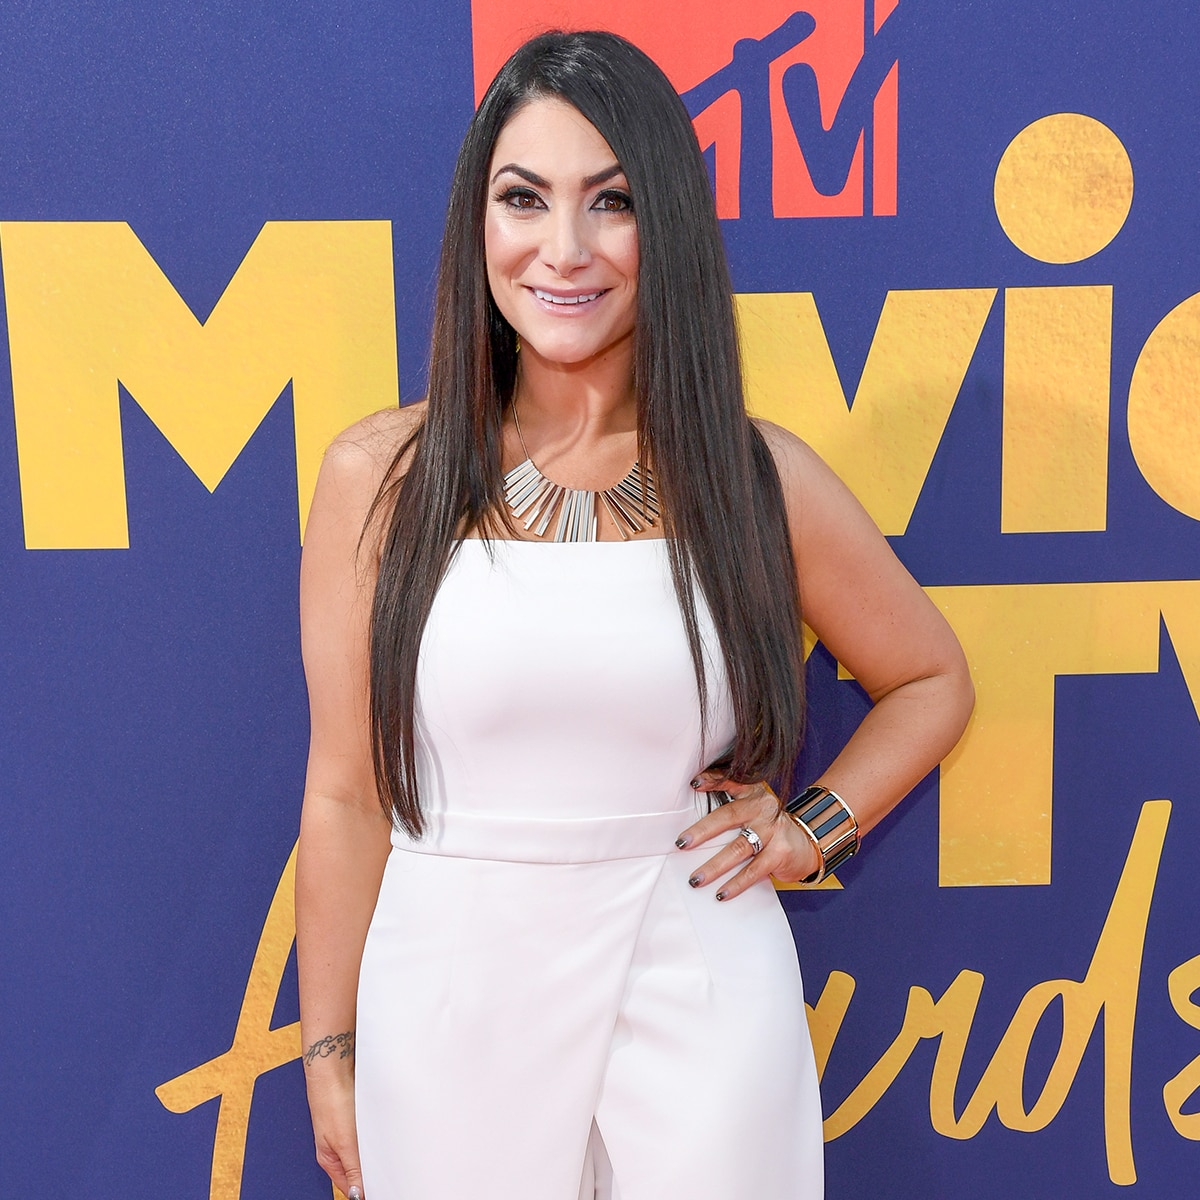 Jersey Shore's Deena Cortese Gives Birth to Baby No. 2 - E! Online